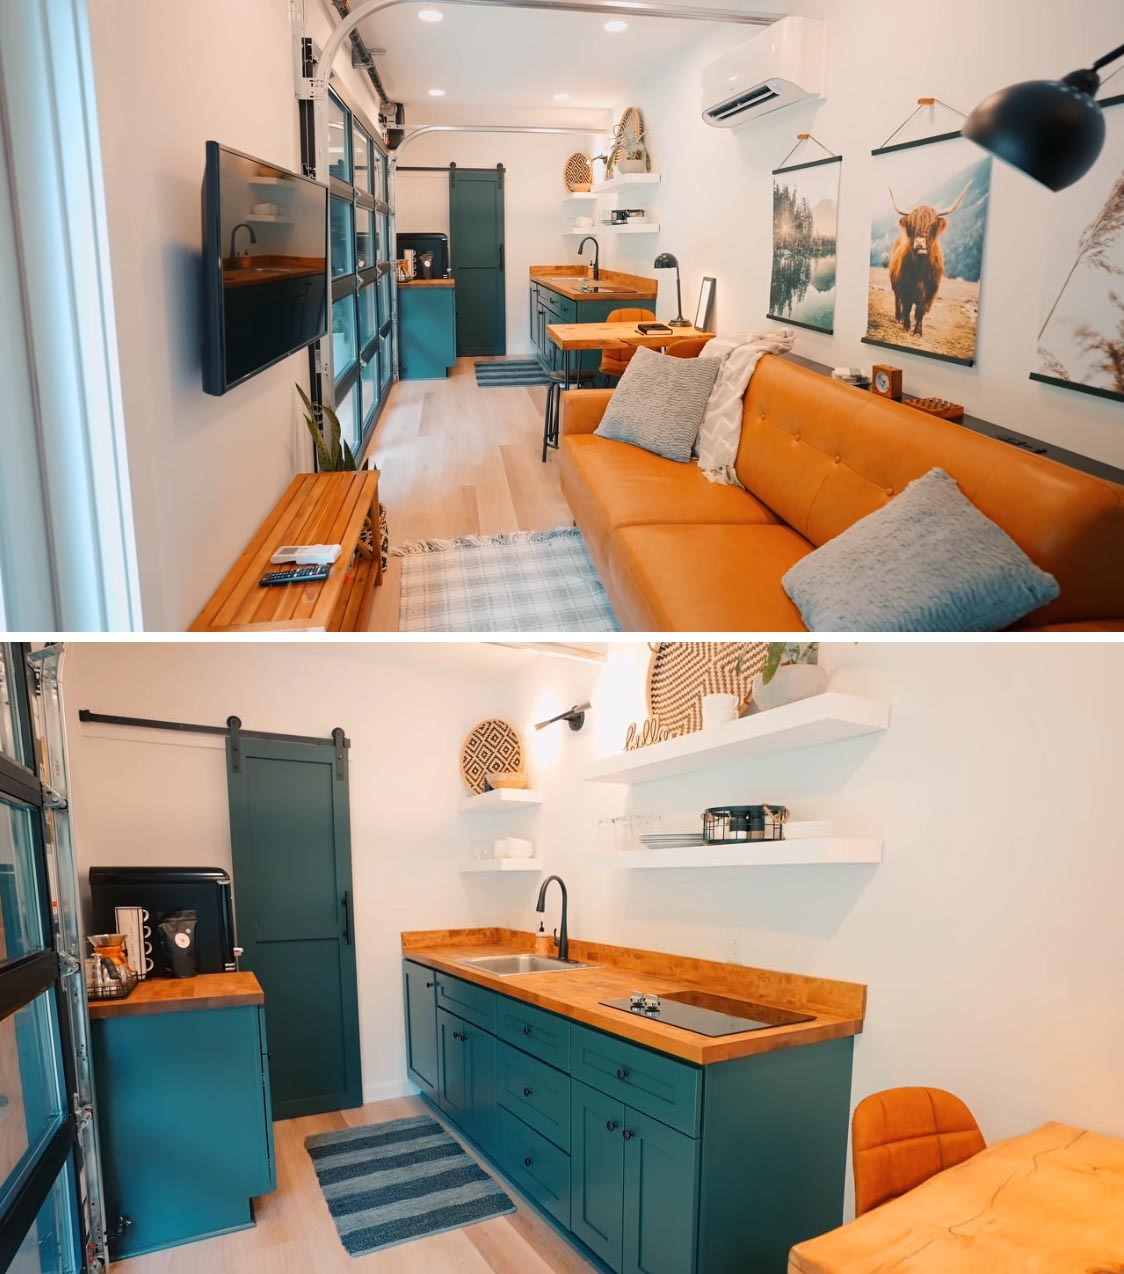 In this modern shipping container home, a small wood table separates the living room from the kitchen, that showcases teal blue cabinets, wood countertops, and white floating shelves that appear to blend into the wall.